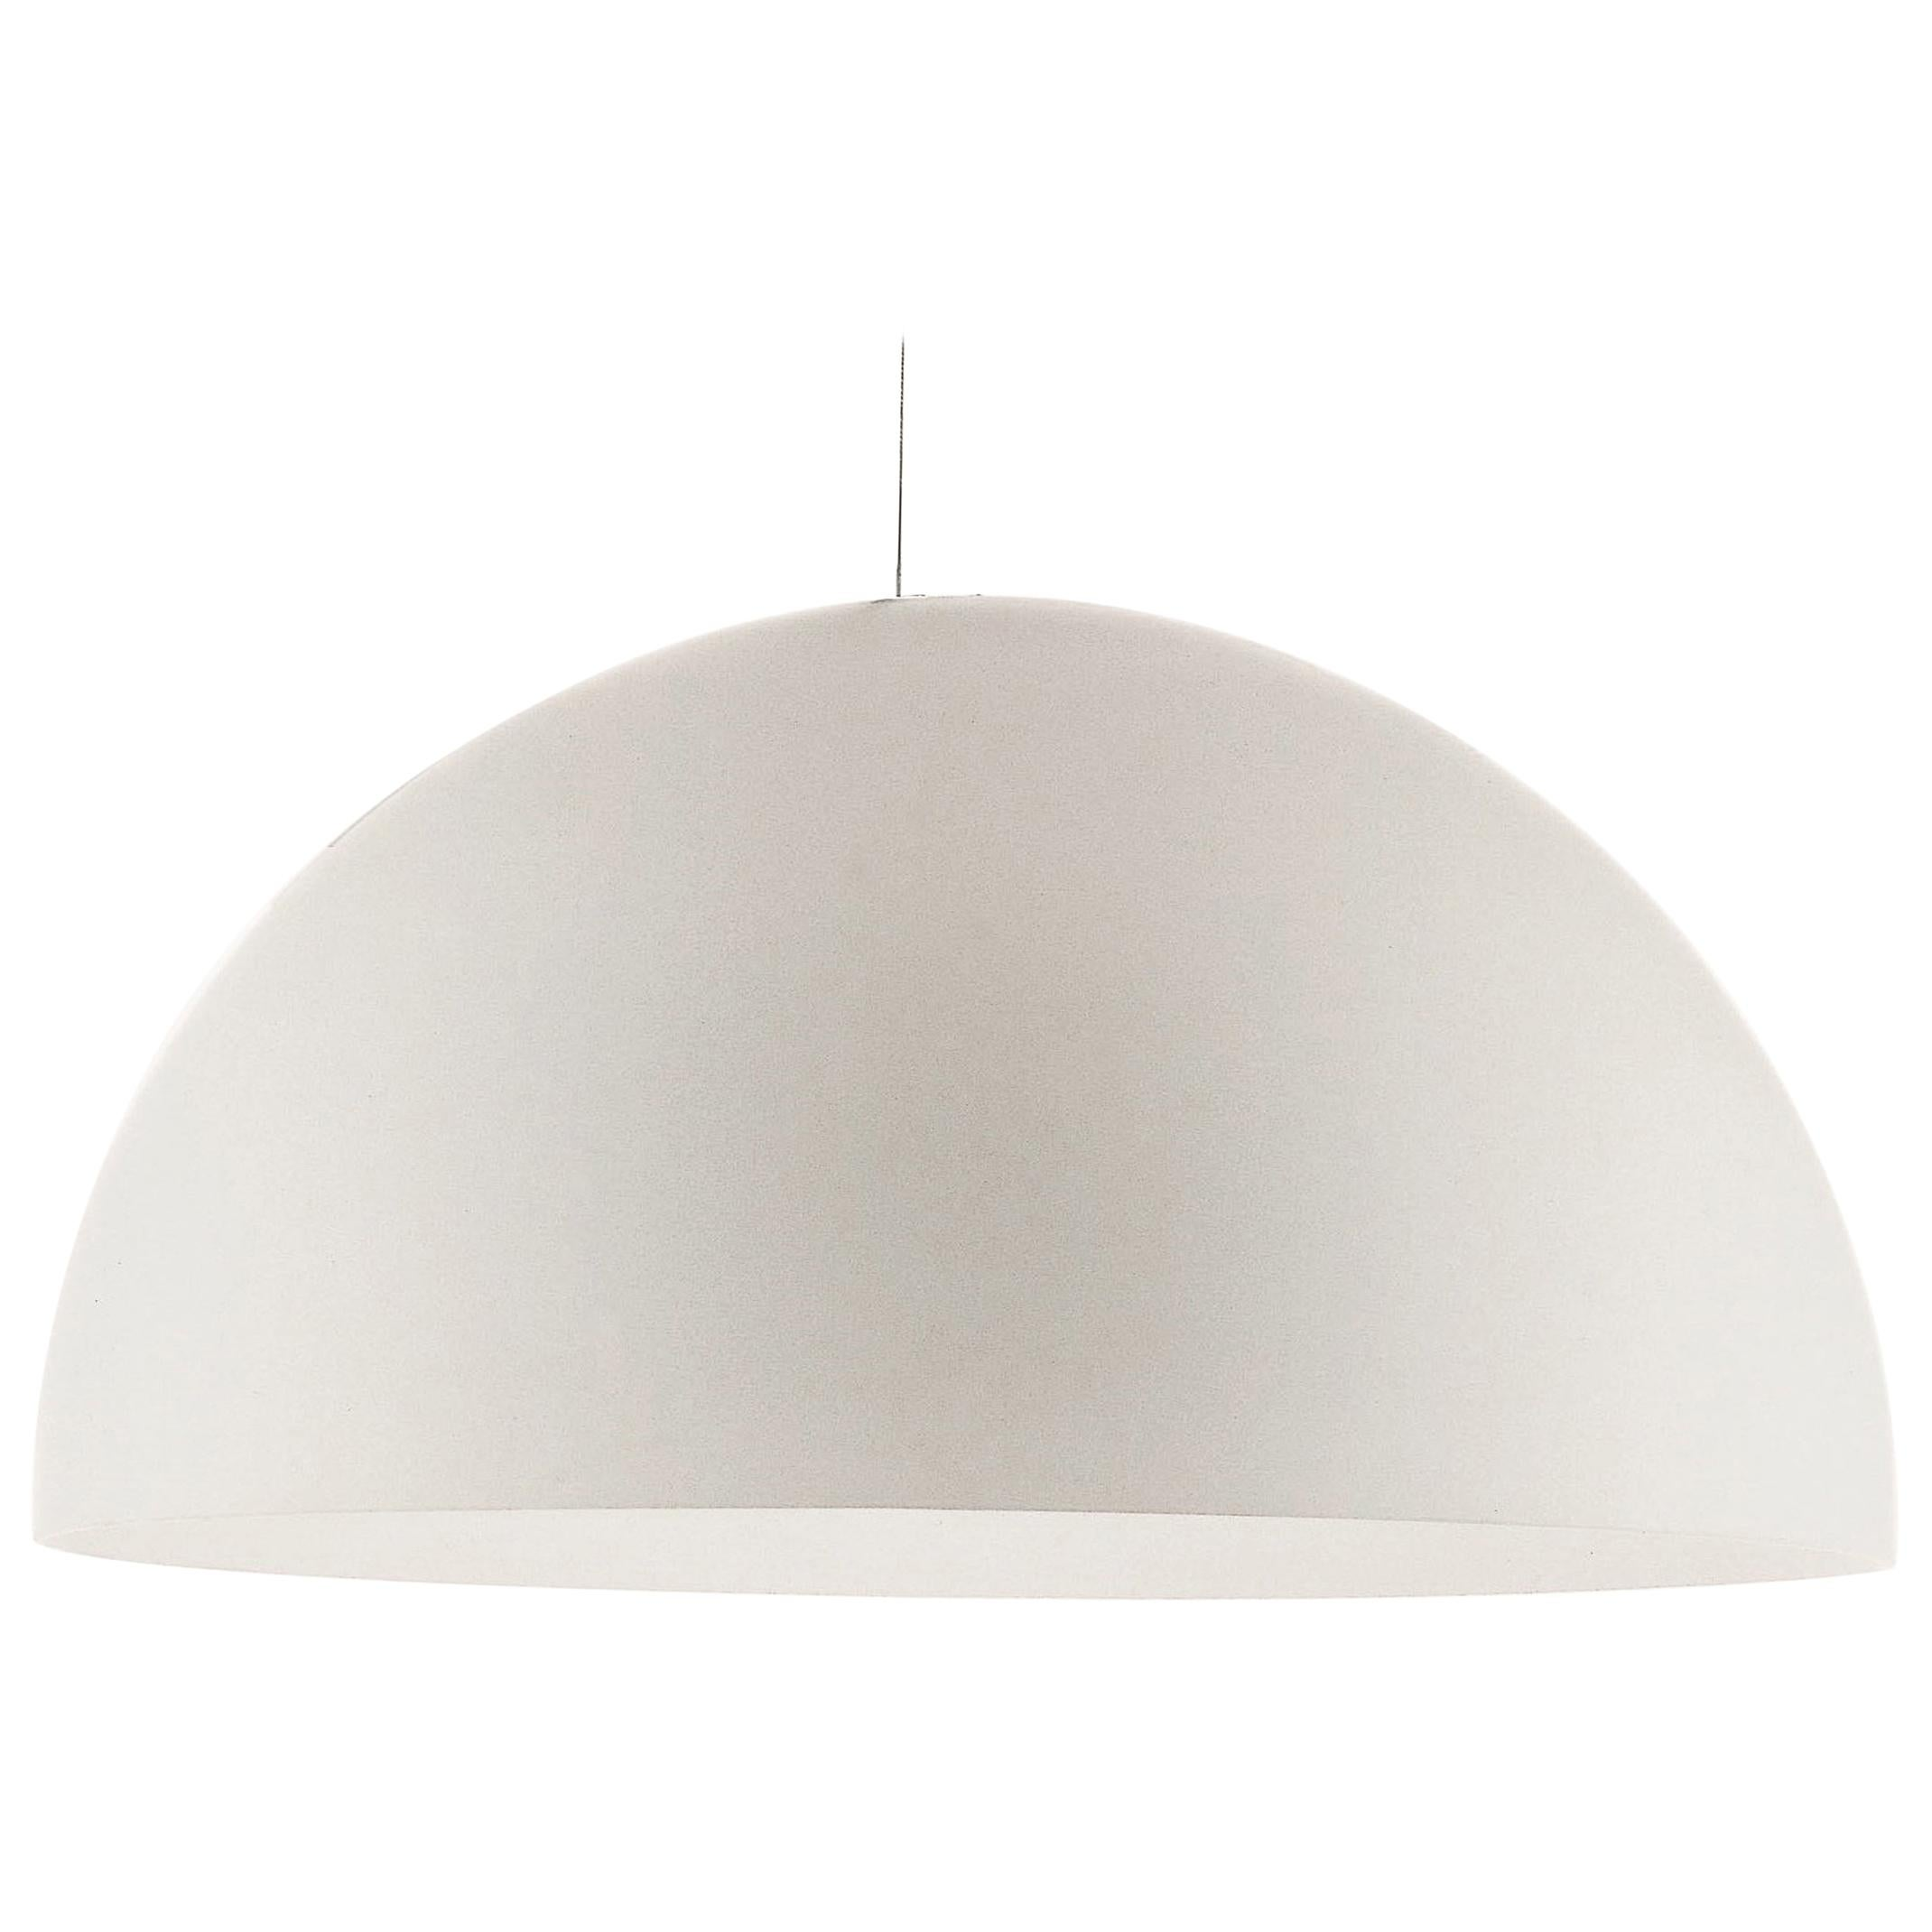 Vico Magistretti Suspension Lamps 'Sonora' Large White Opaline Glass by Oluce